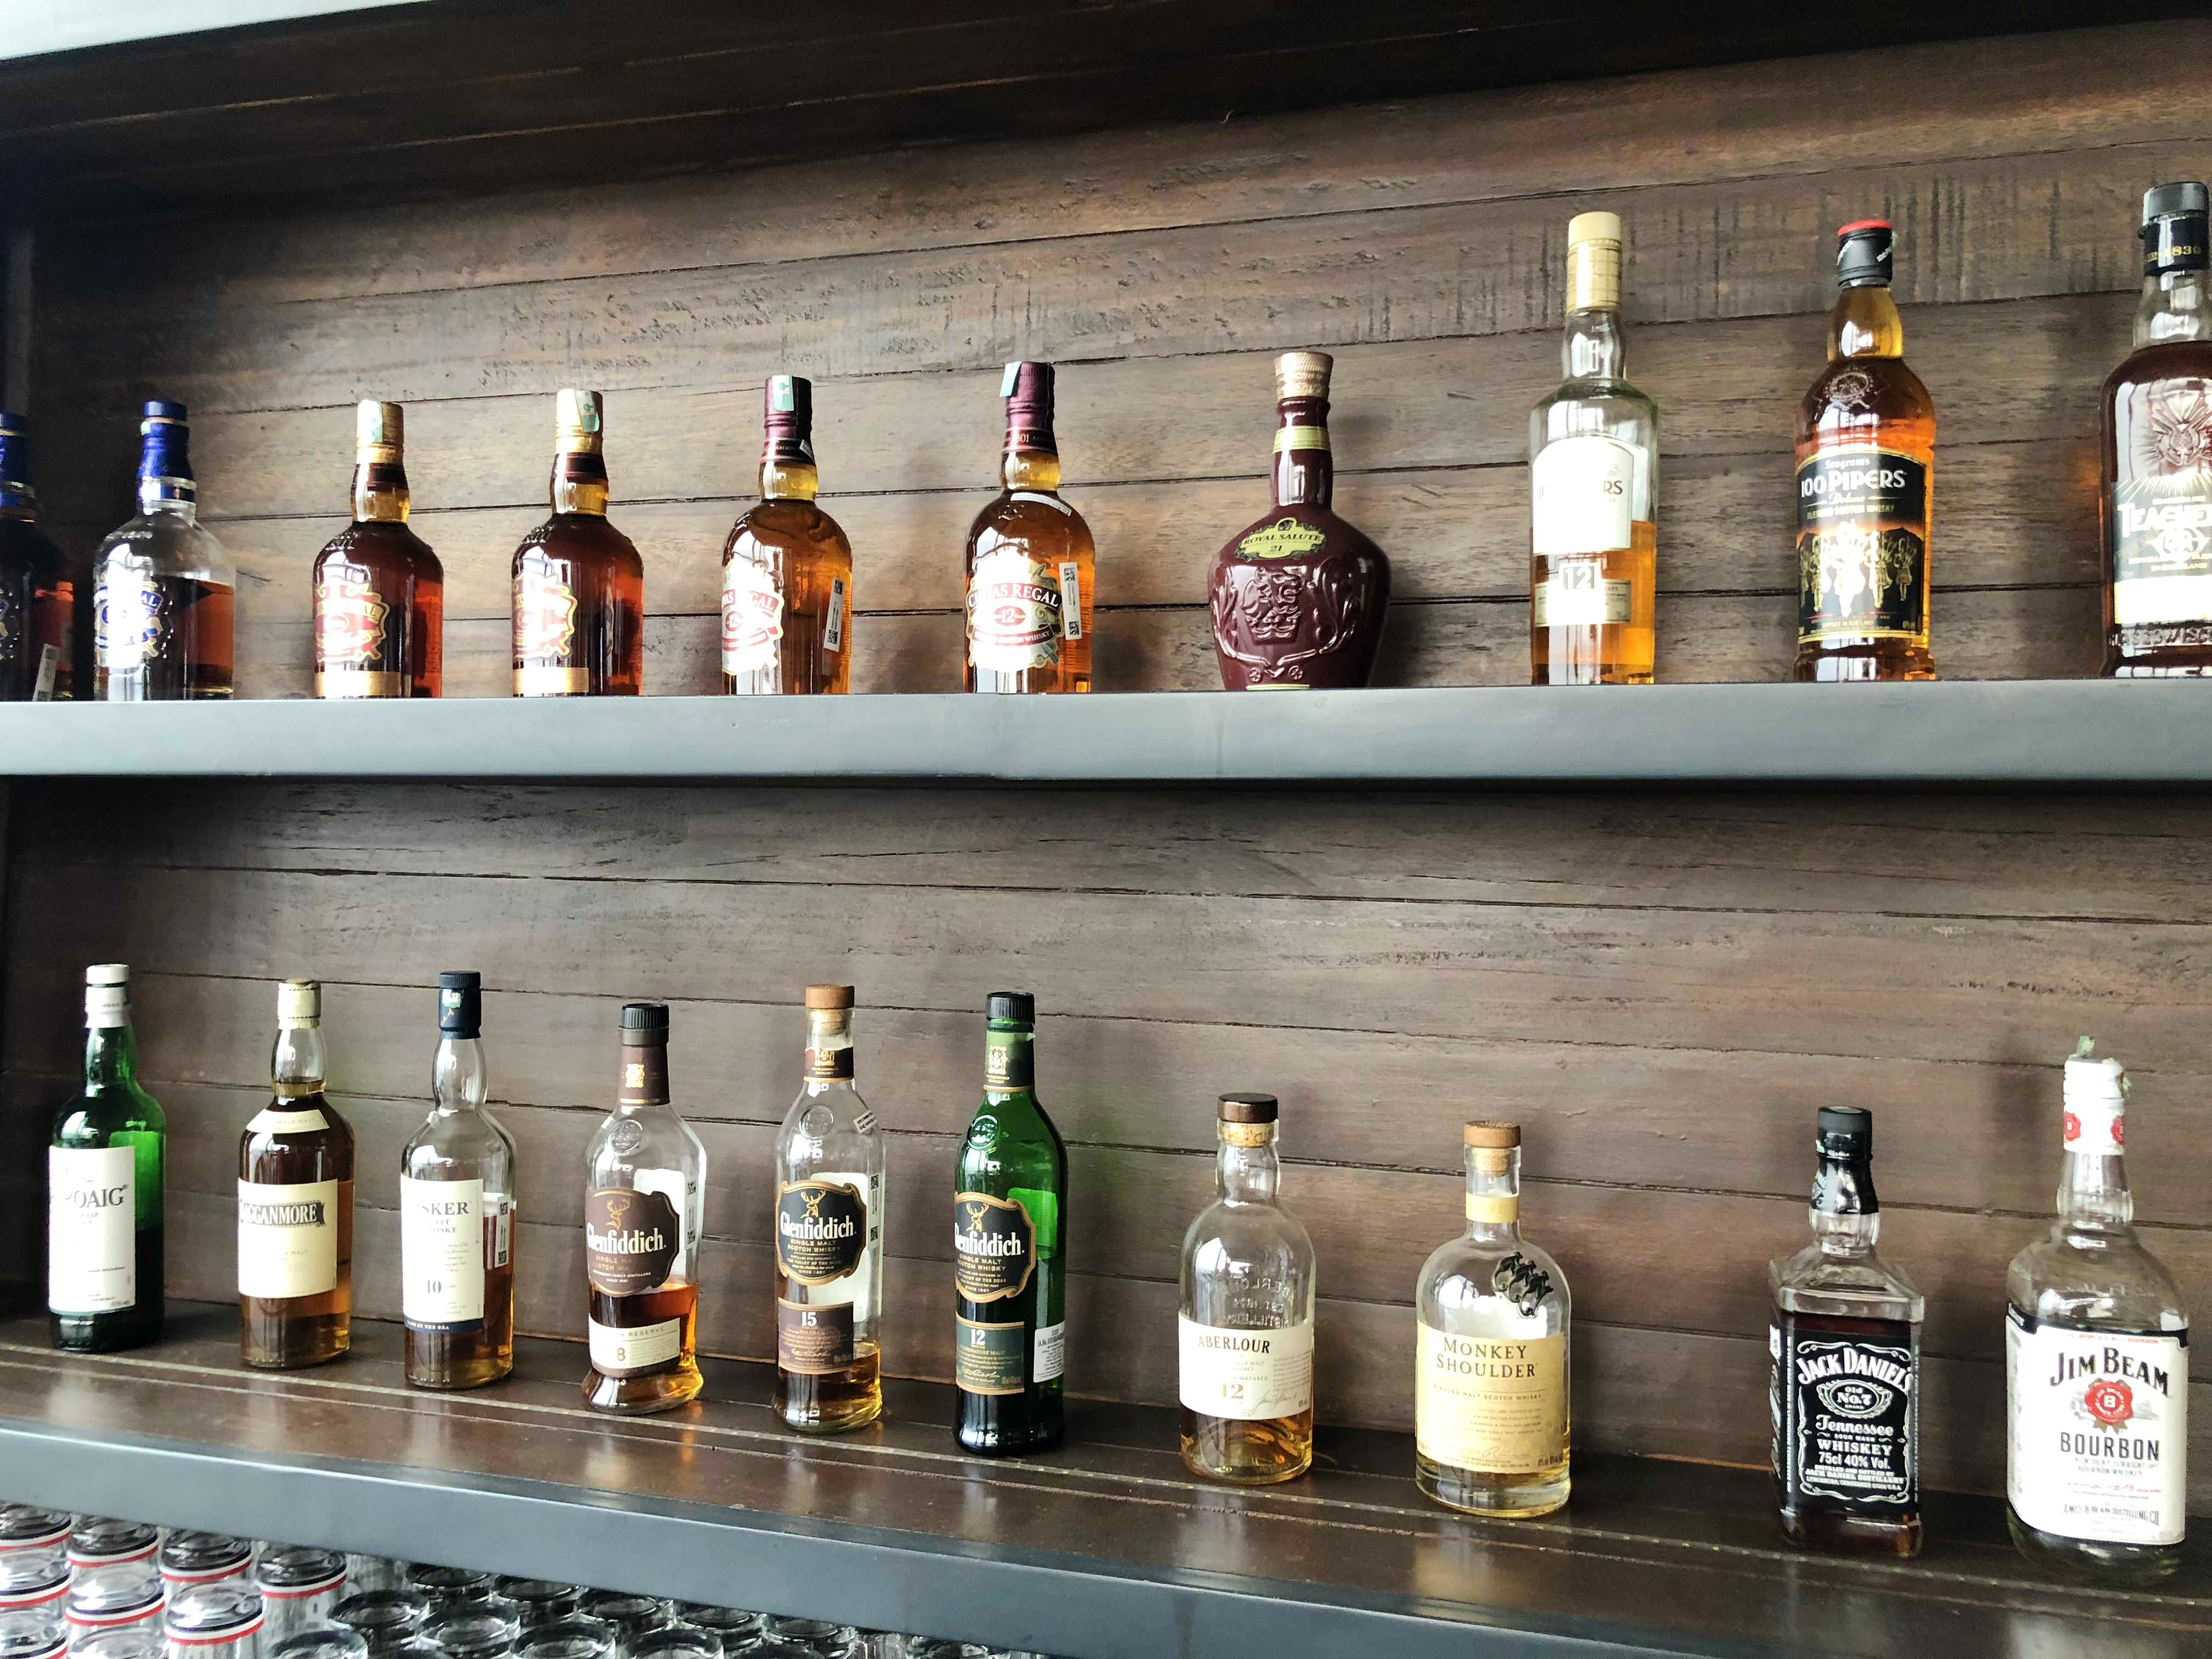 Planning To Throw A Party? Check Out This Bar By Hilton Garden Inn